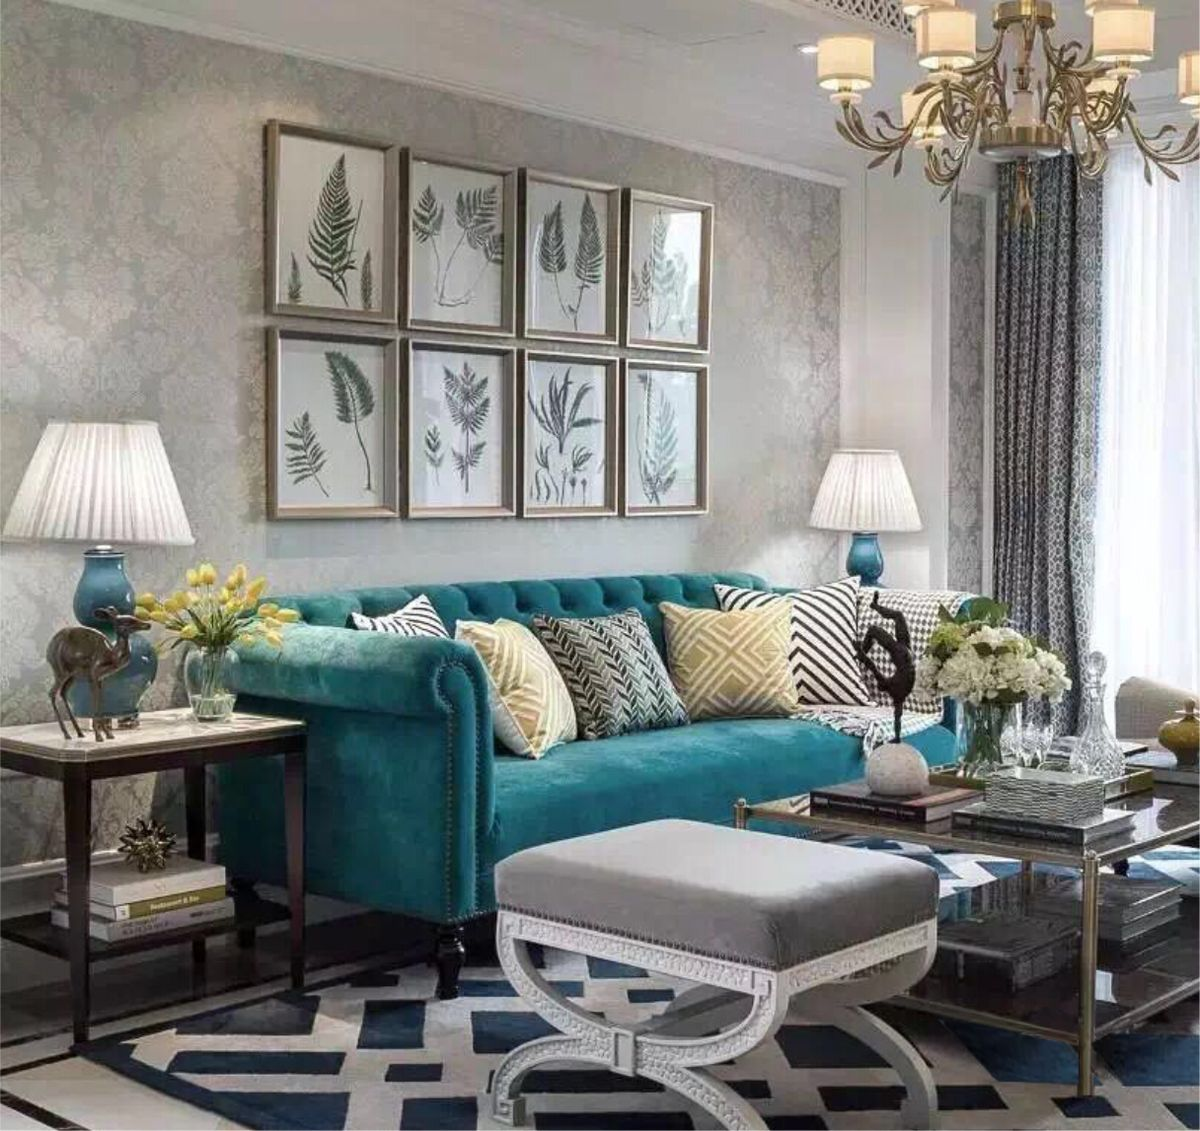 marvellous turquoise living room | Pin by tom on ket | Canapé turquoise, Salon maison, Salon ...